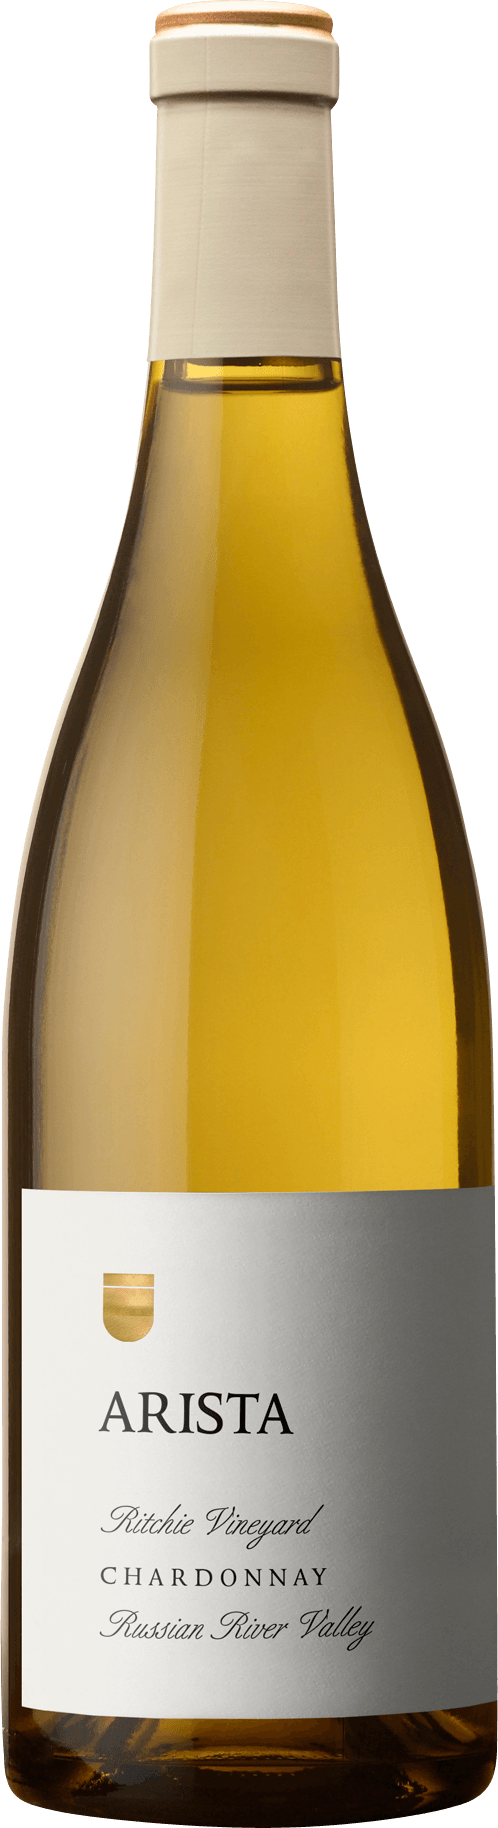 AS NV Ritchie Chardonnay Bottle Transp 2